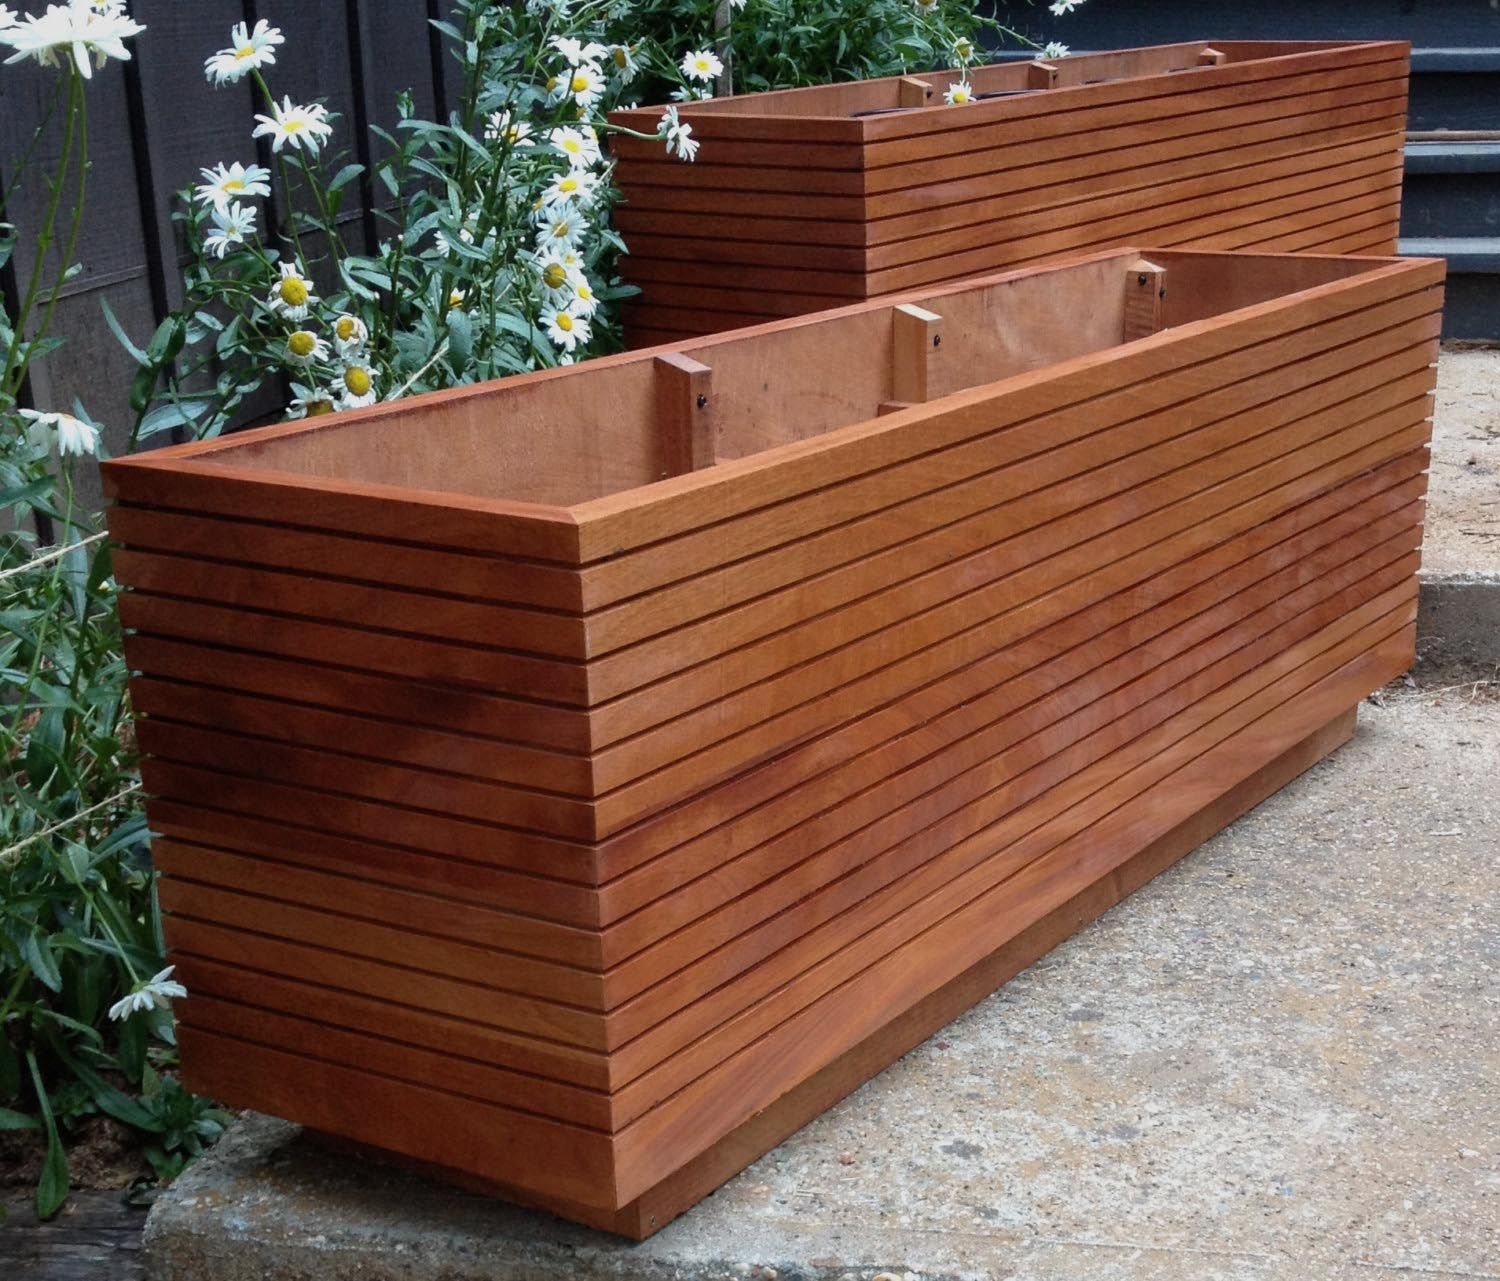 Rectangular Wooden Planter Boxes Garden Ideas Planter Boxes